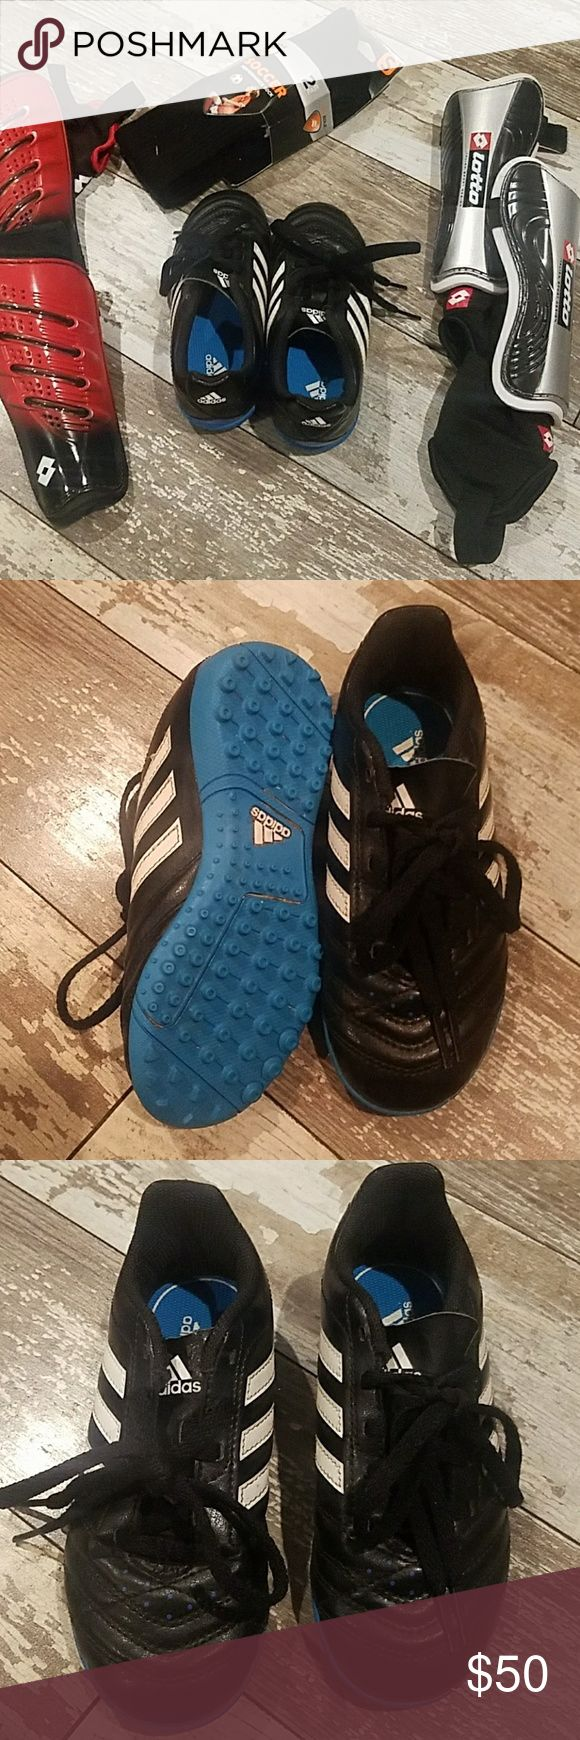 ⚽KIDS SOCCER BUNDLE⚽ Like new.  Adidas soccer shoes. 2 pairs of shin gaurds. FREE 2 pair of soccer socks NWT. adidas Shoes Sneakers